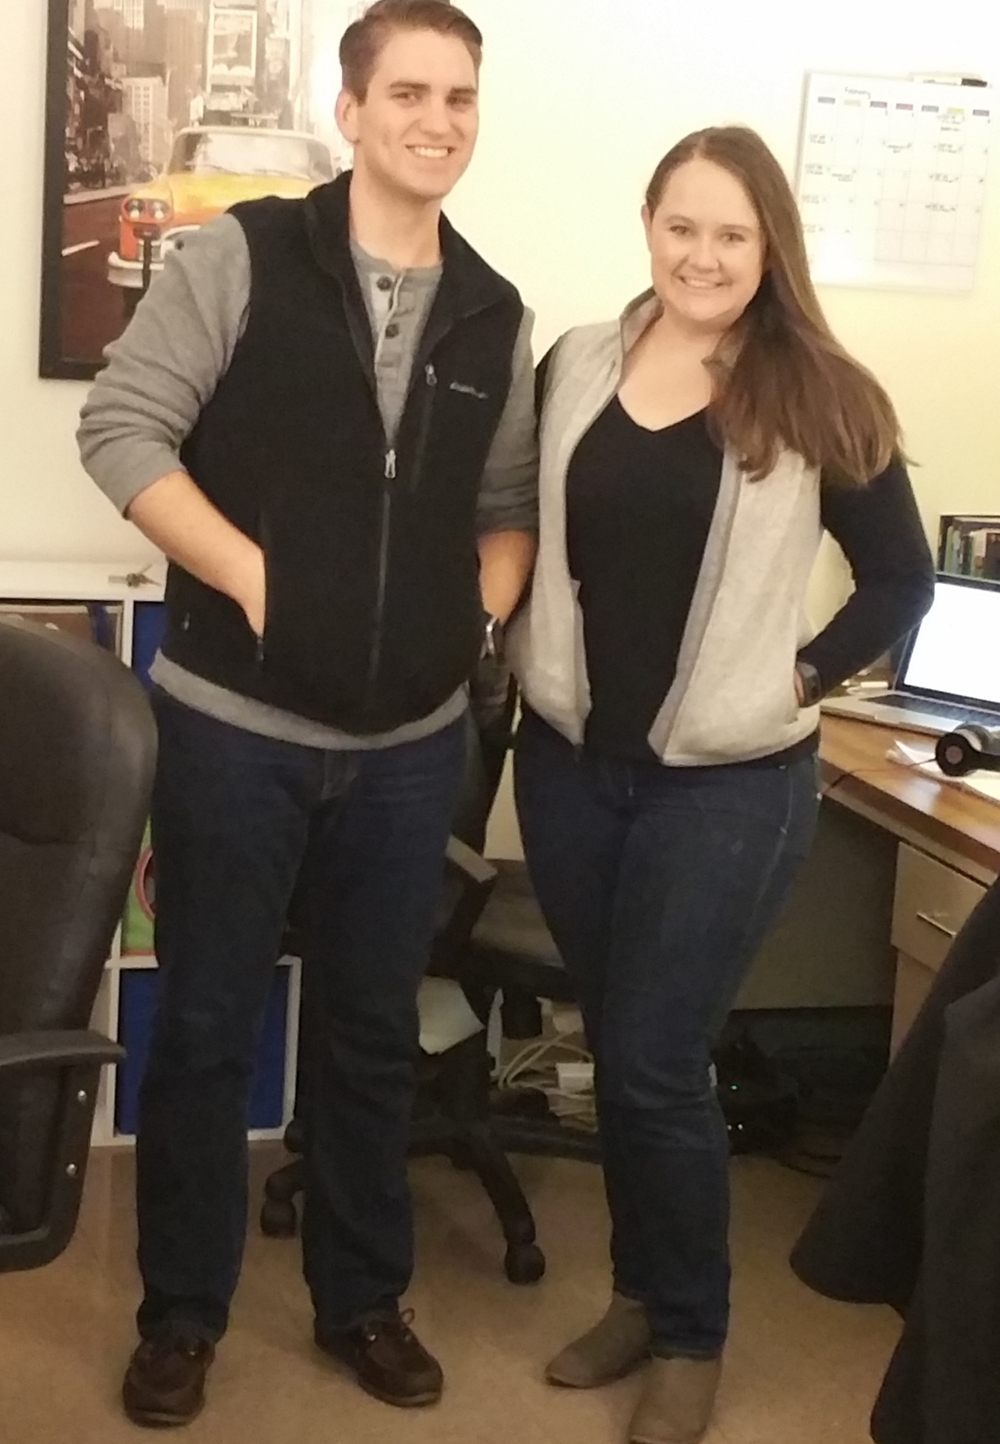 Another accidental clothing match!